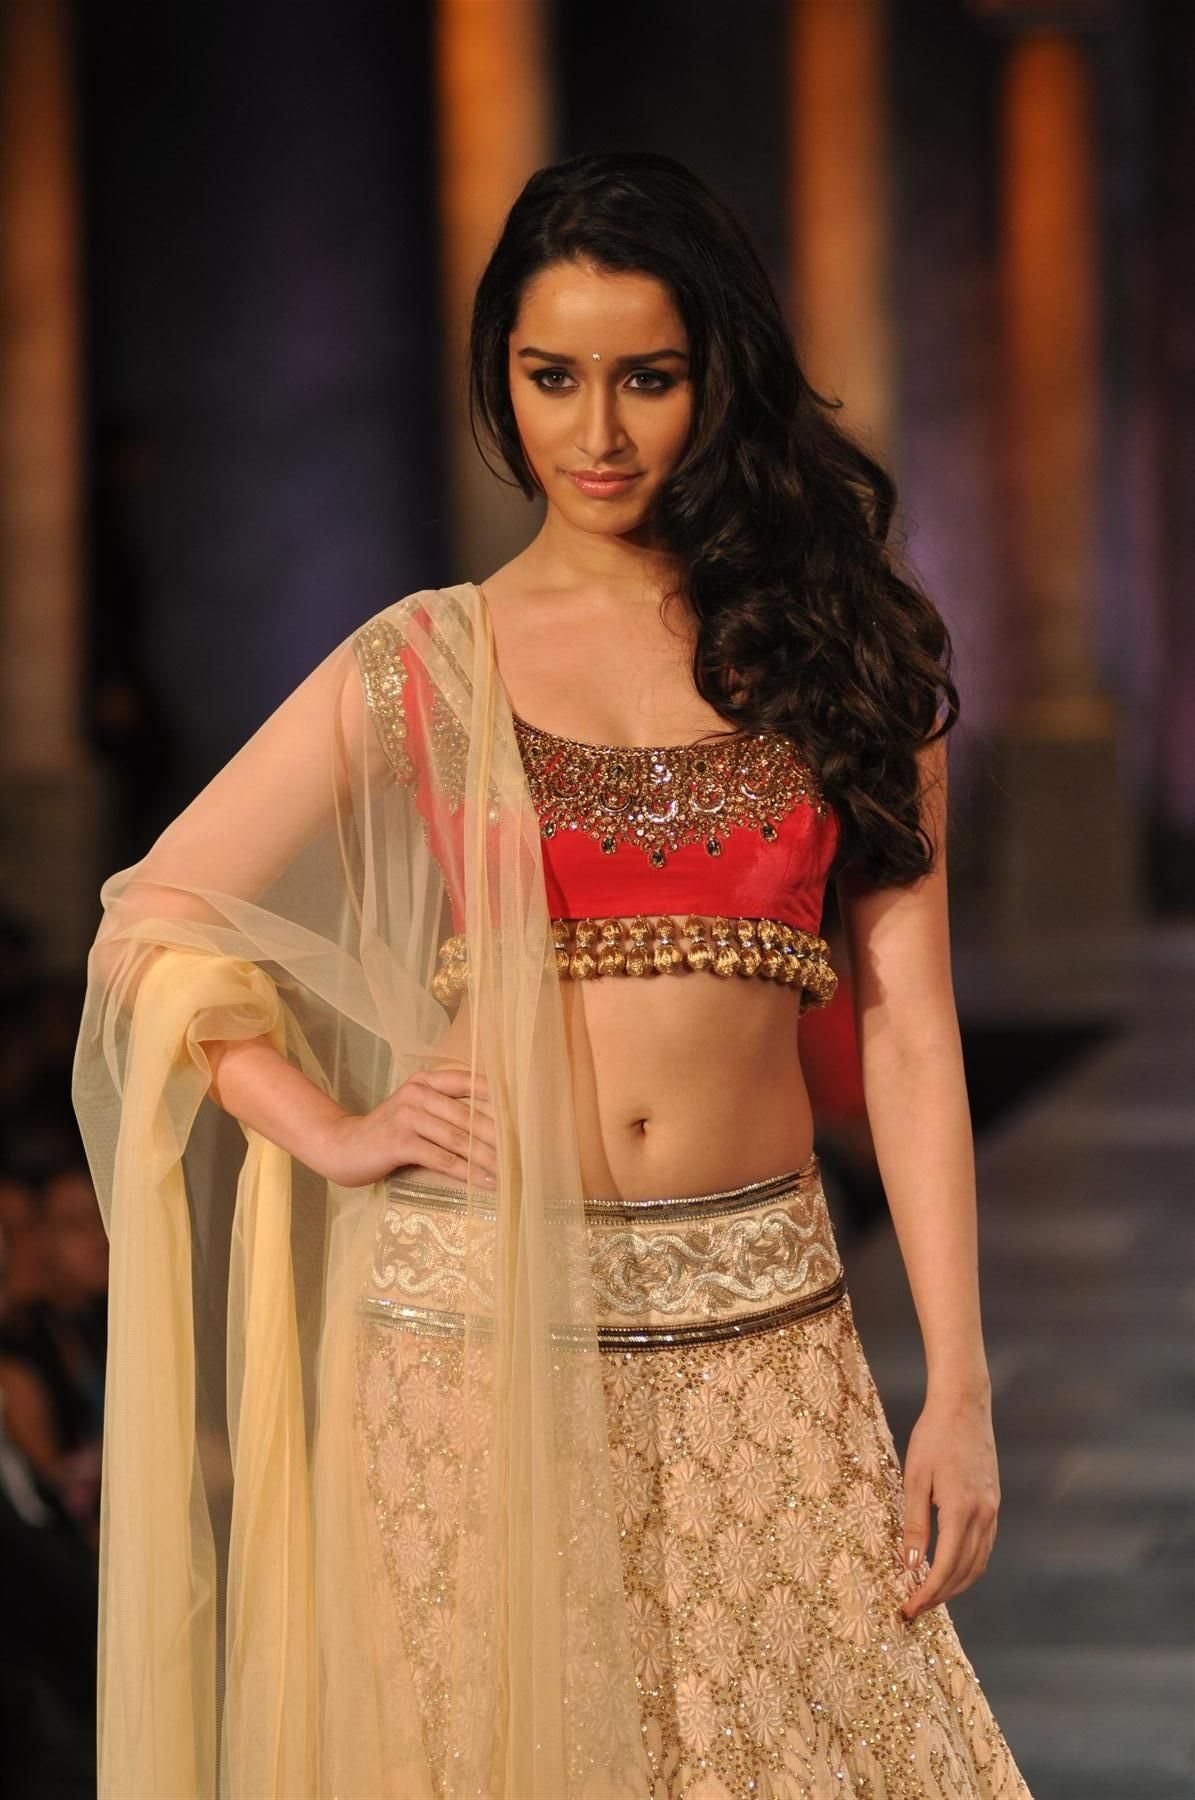 shraddha kapoor hot hd wallpaper from aashiqui 2 movie | celebrity